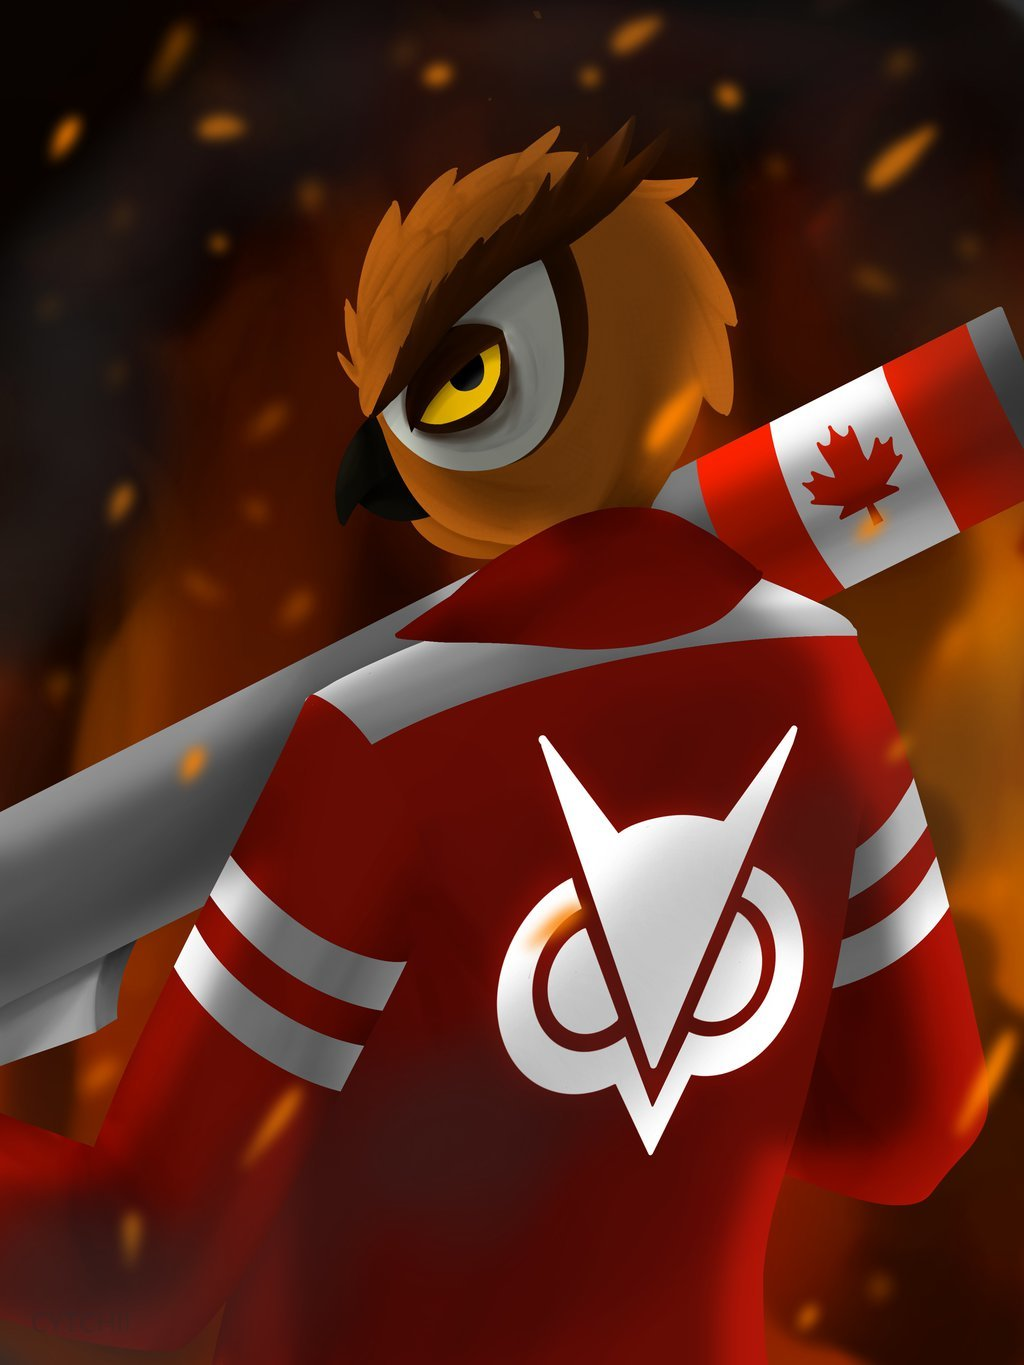 vanossgaming hoodini owl wallpaper bing images card from user